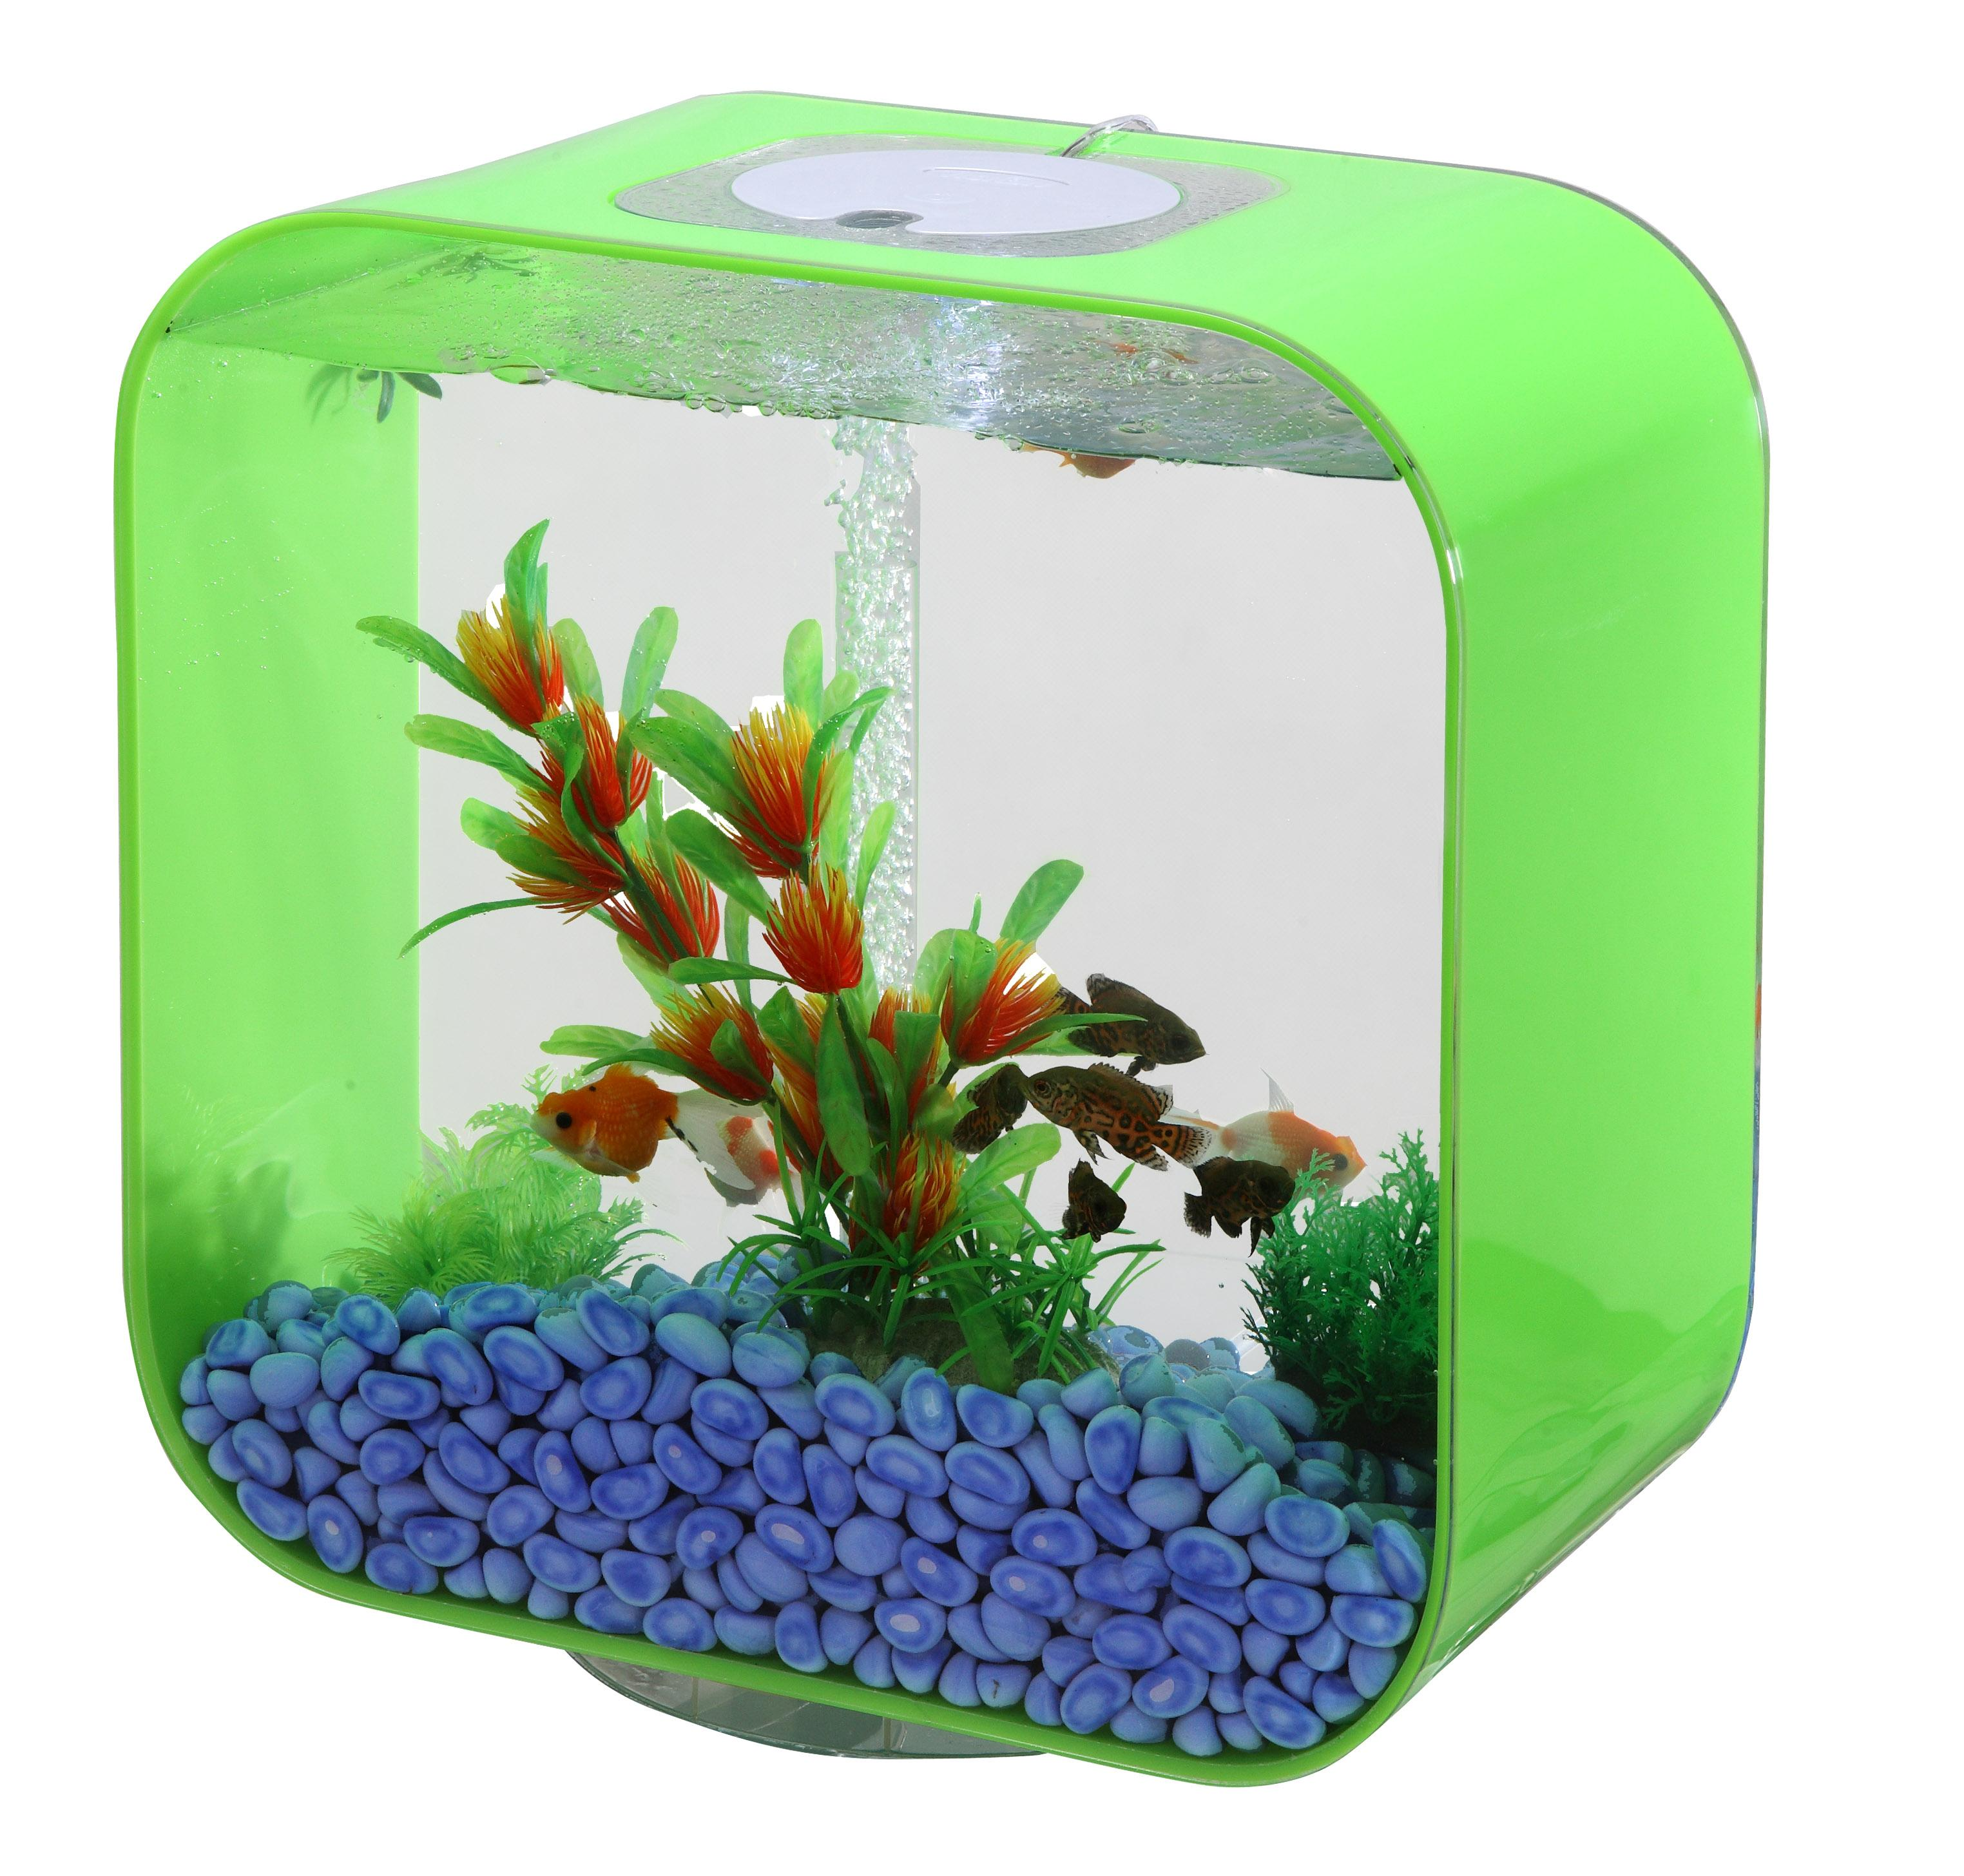 Design Nano Acryl Aquarium Mb600 Rot 45l Fish Fever Ebay